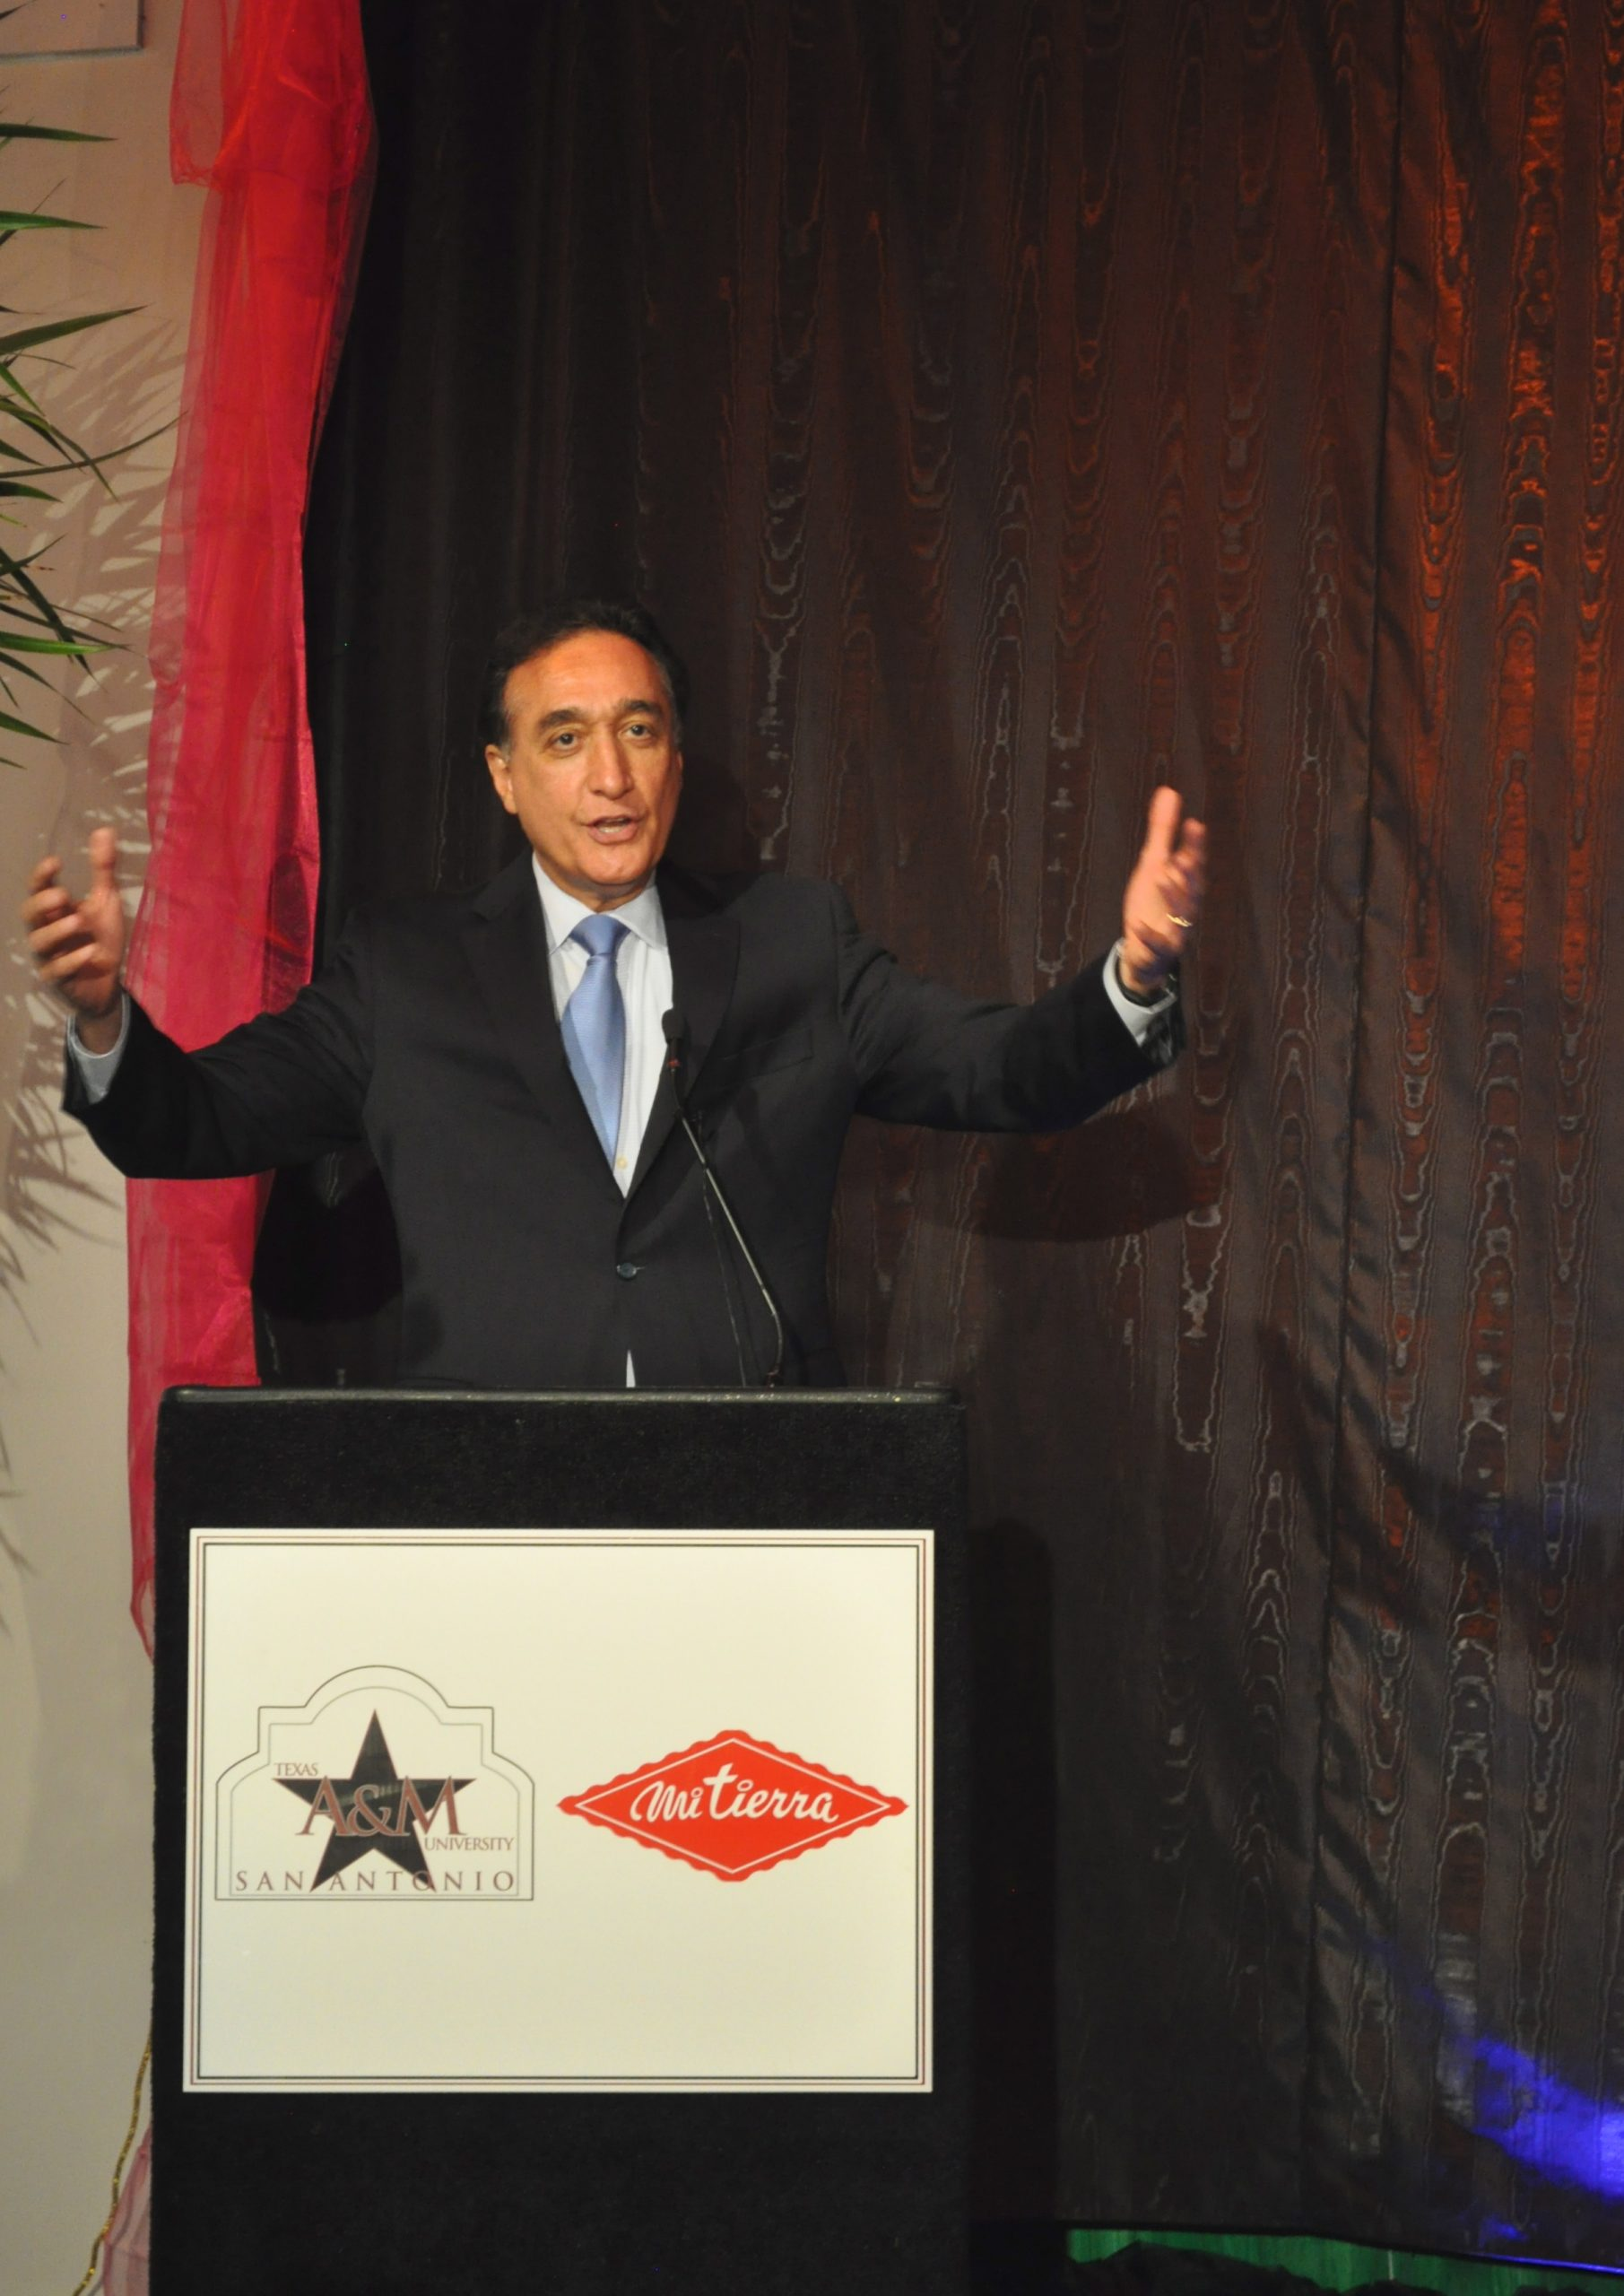 Henry Cisneros opens the ceremony at Texas A&M's new Casa Rosa, formerly the Museo Alameda in Market Square - El Mercado.